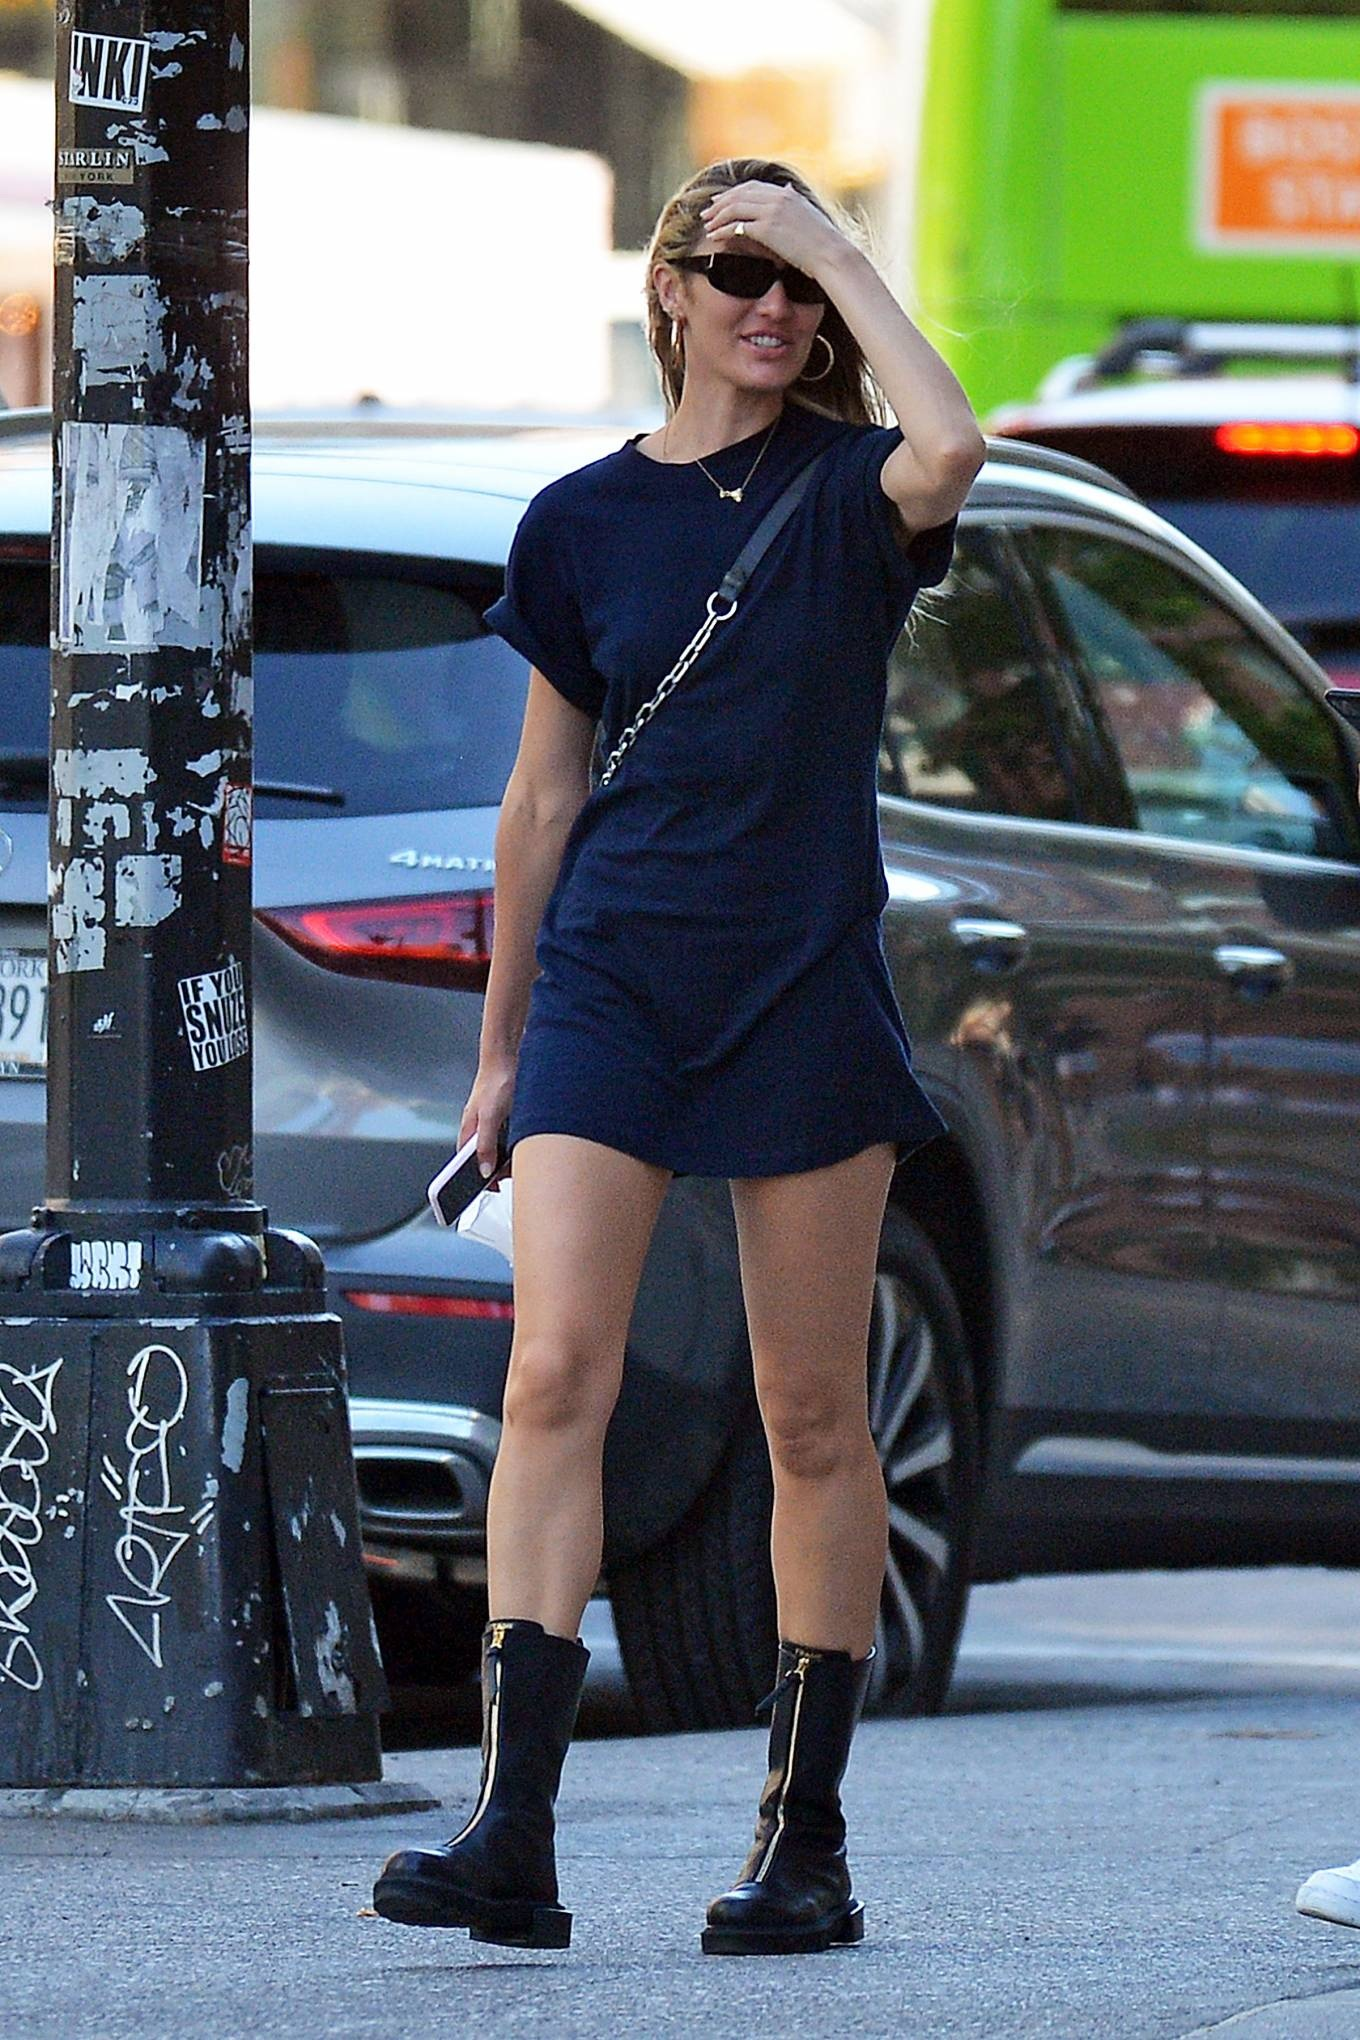 Candice Swanepoel rocking zipper accents black leather knee high boots with cuban heel